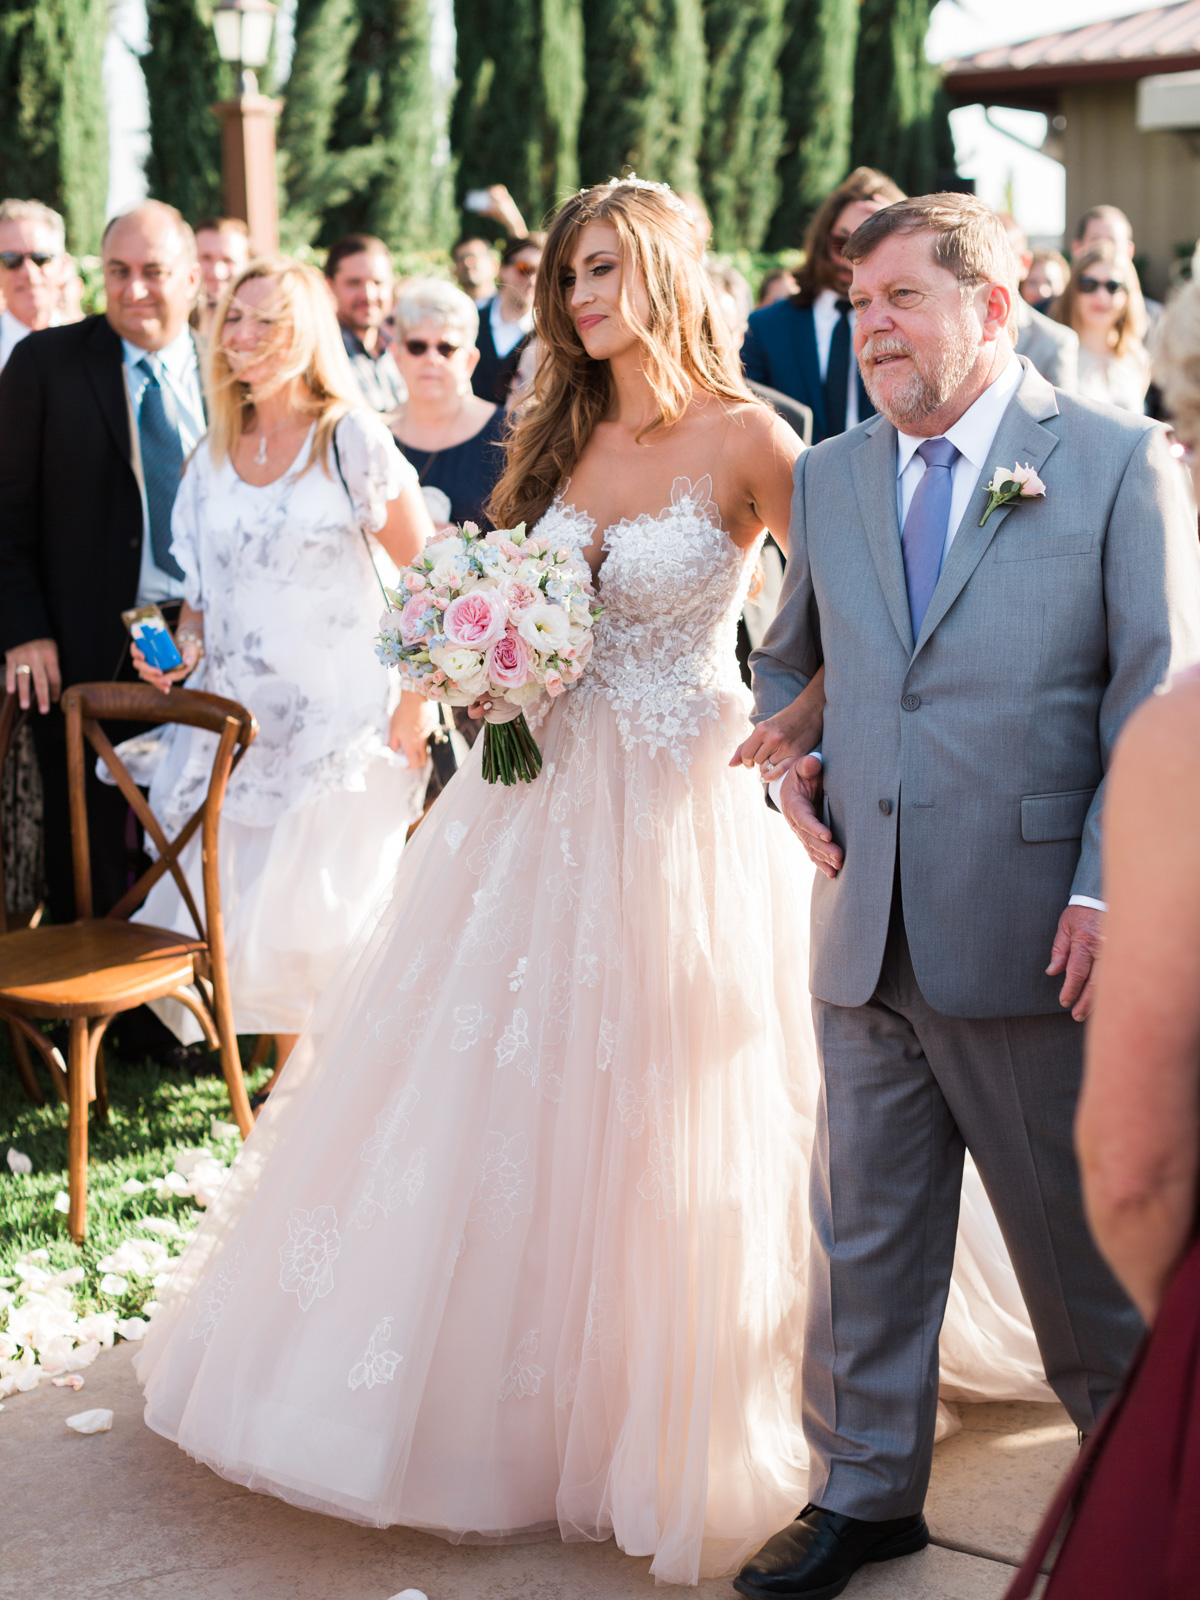 Father walking daughter down the aisle | Harrison & Jocelyne's gorgeous Temecula wedding at Wiens Family Cellars captured by Betsy & John | Temecula Wedding Photographers